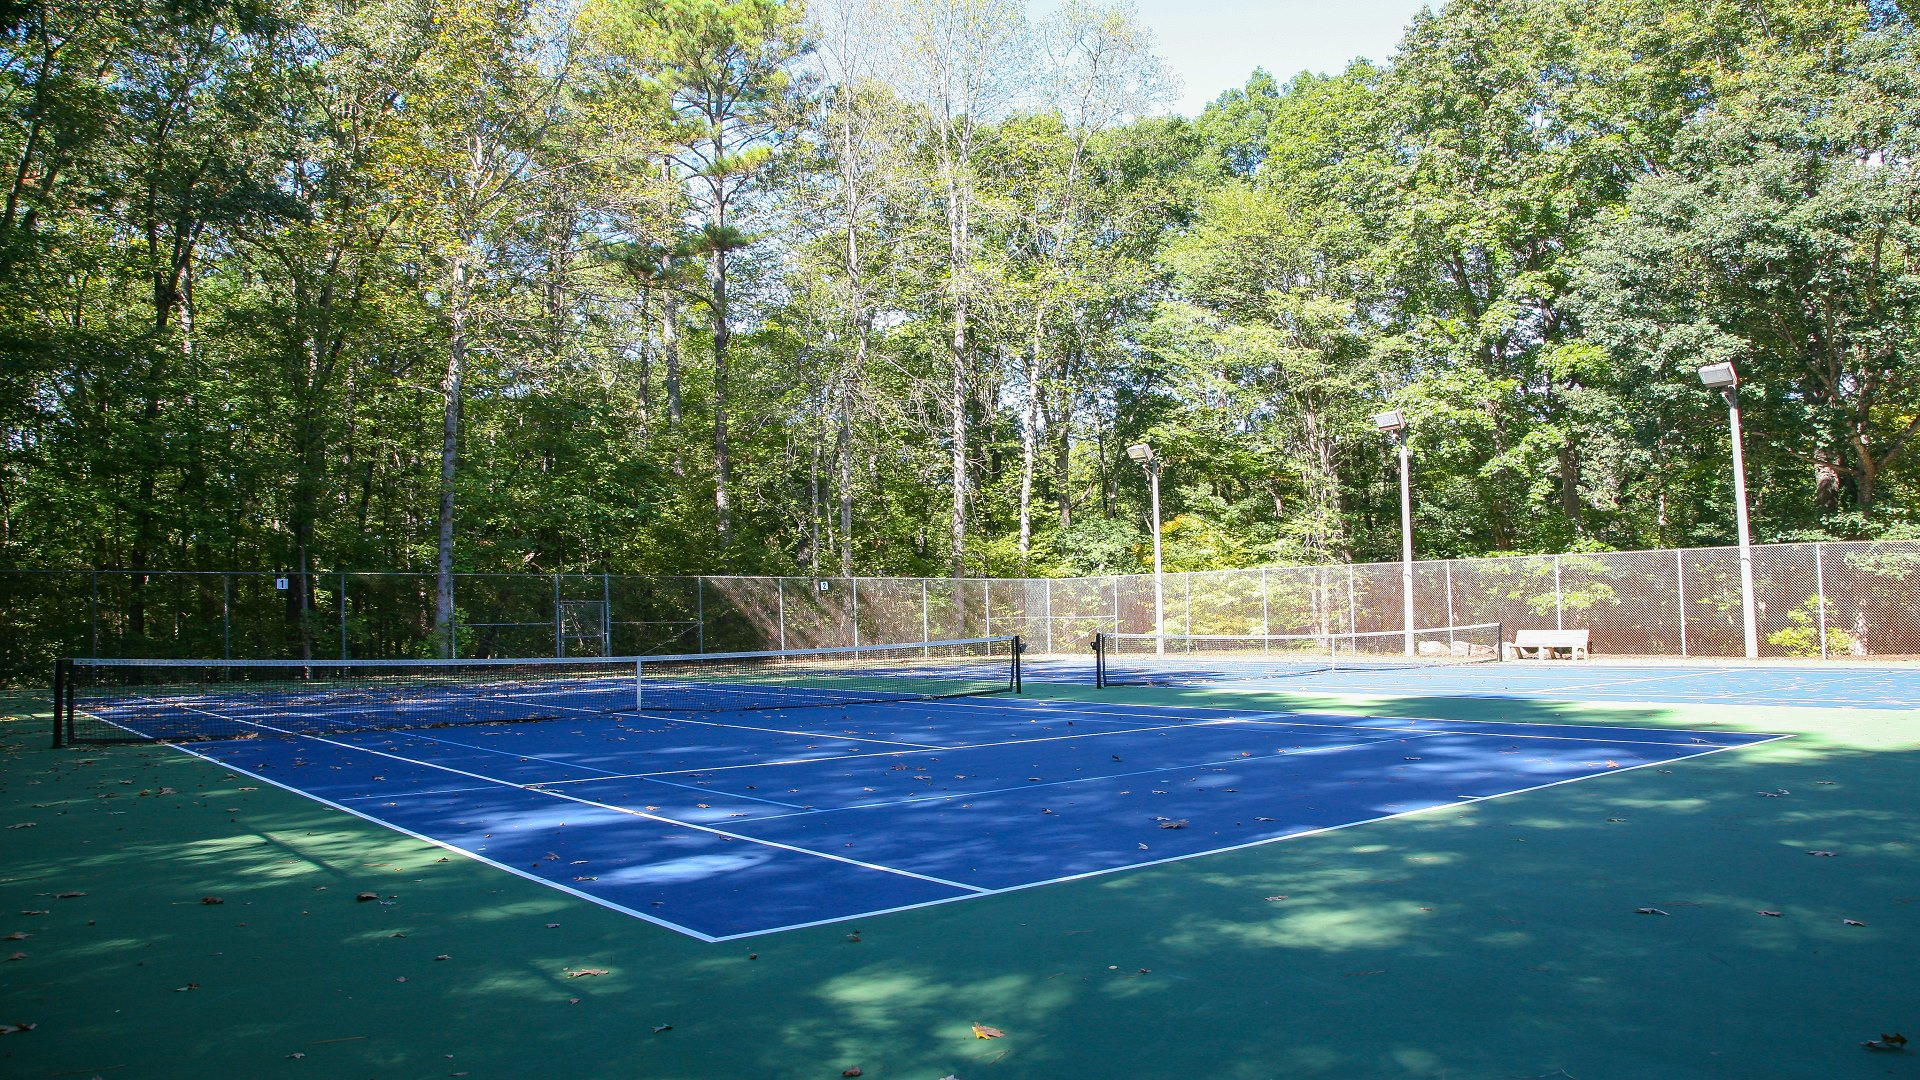 Two outdoor tennis courts at North Hills Park.